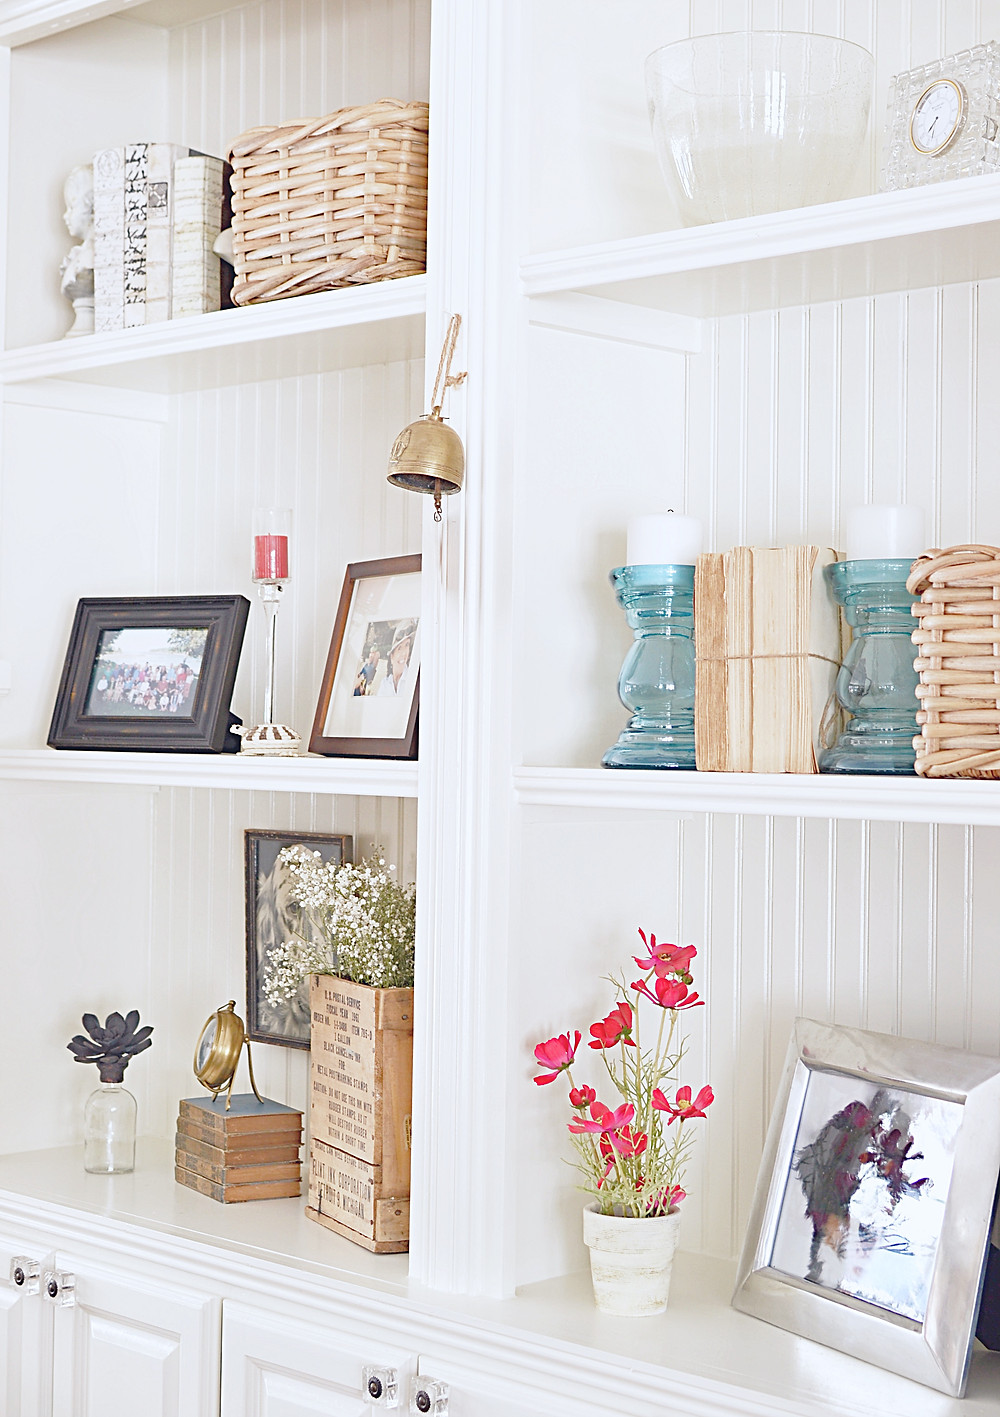 Built-Ins styled with vintage books, baskets, candles and more.